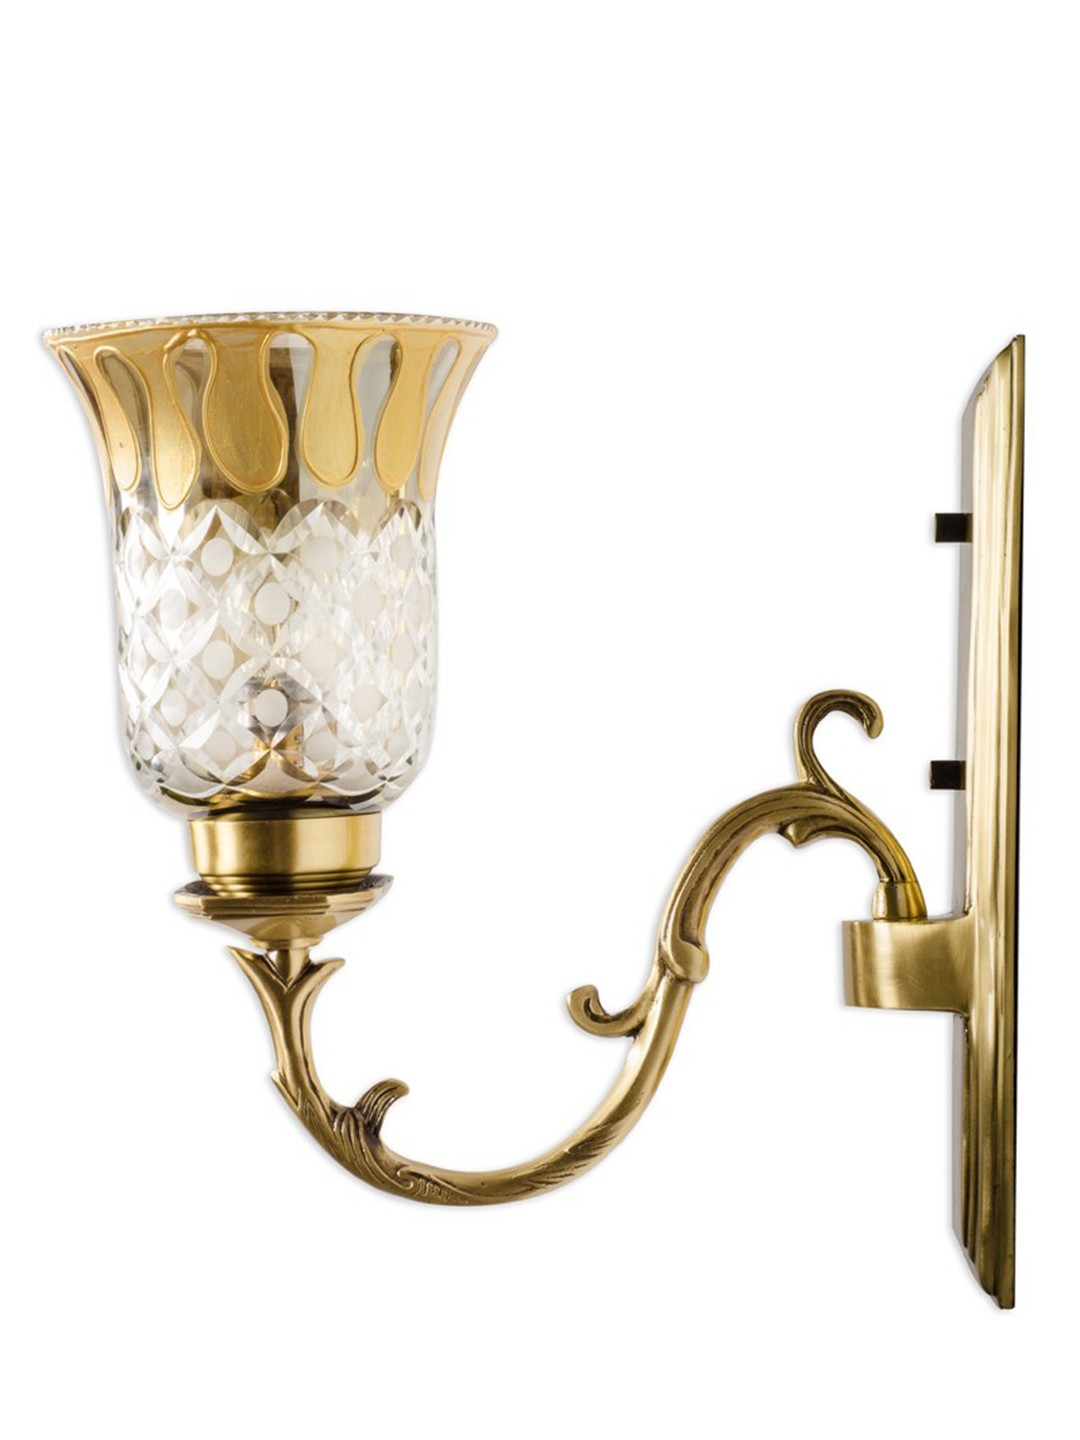 Rectangular Brass with Smoke Cut Glass Single Wall Sconce